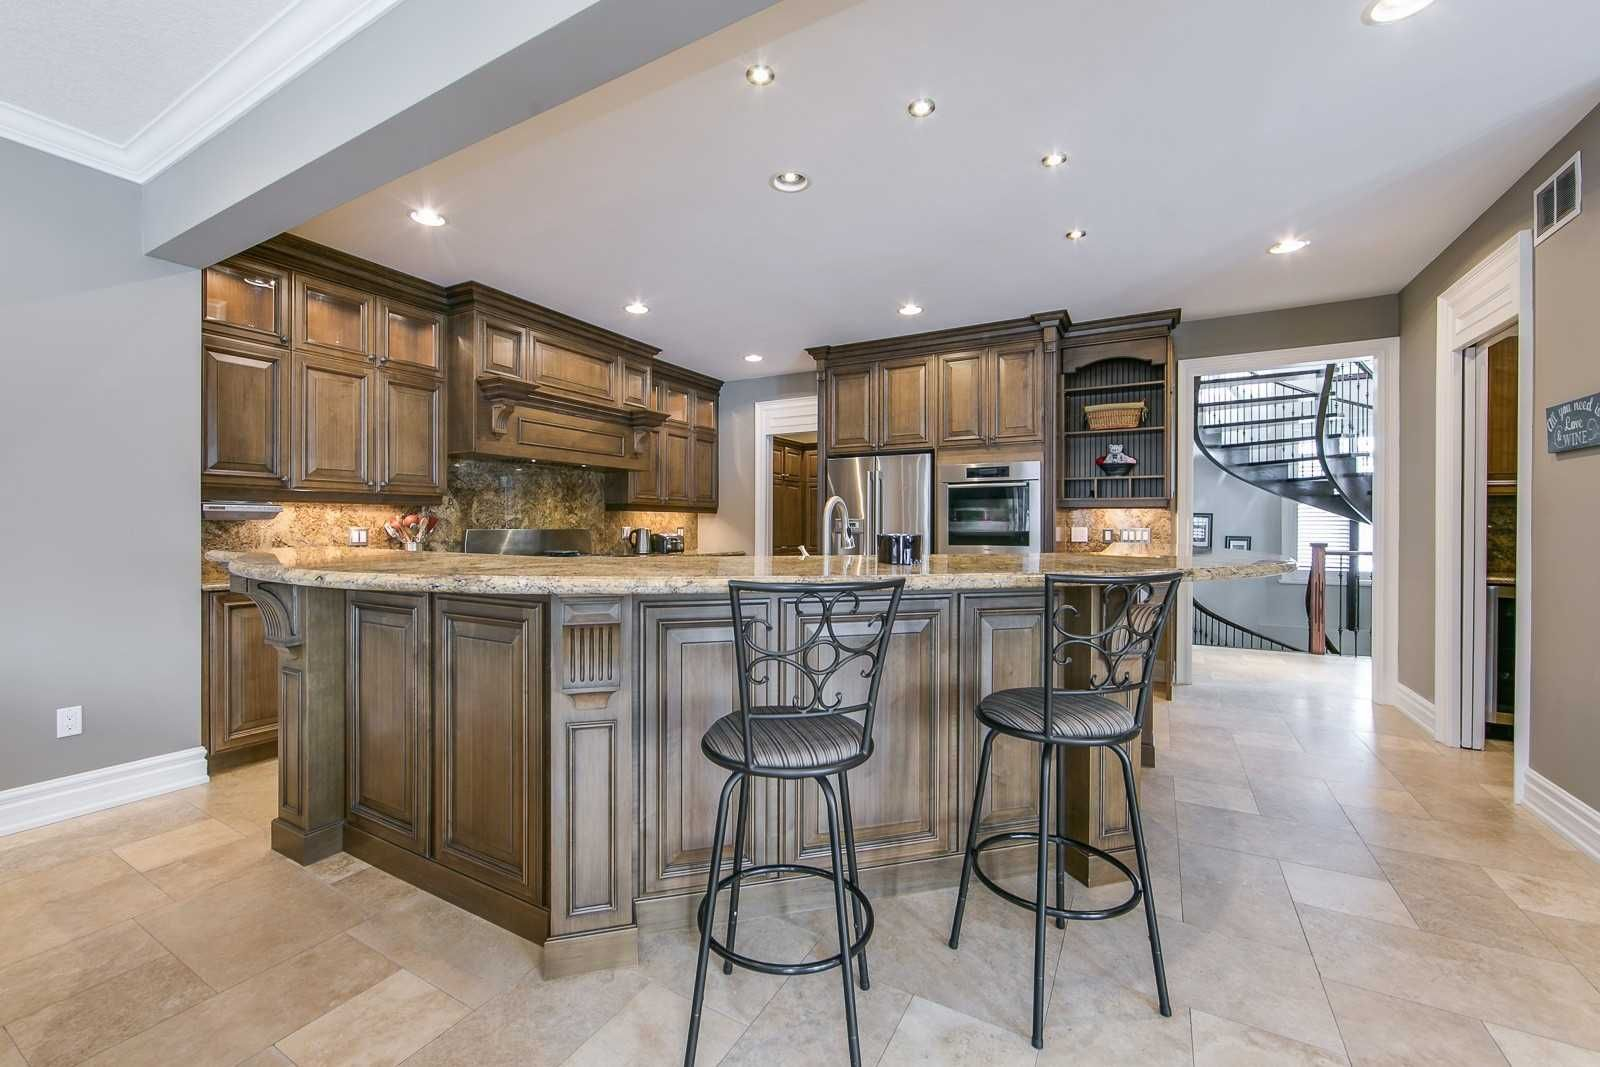 33 Urquhart Court for sale